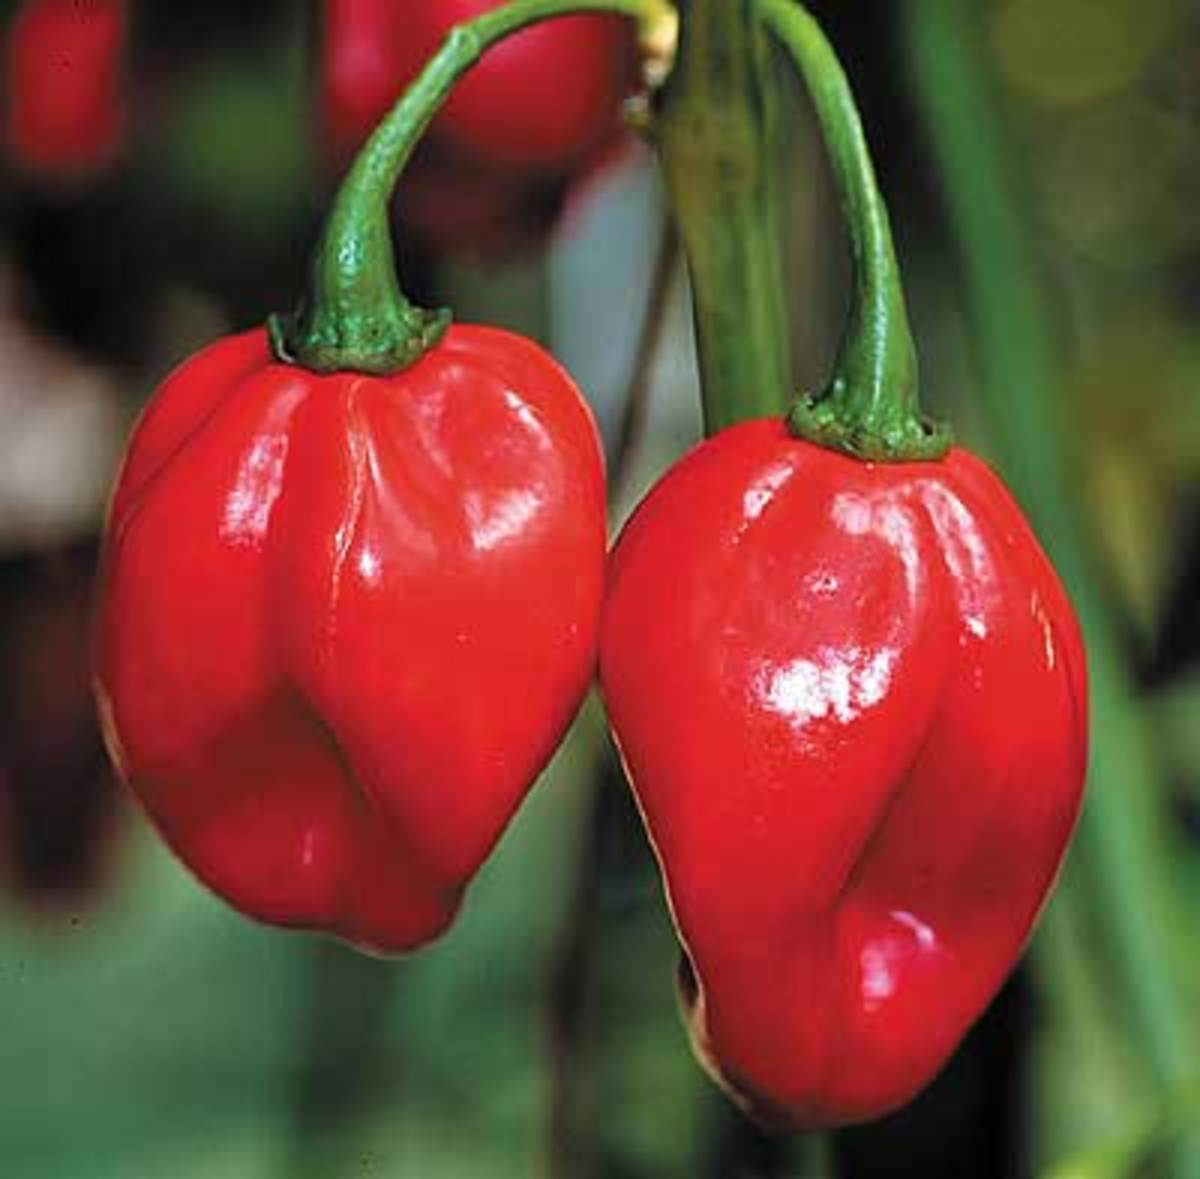 Scotch Bonnet, a capsicum very similar to habanero, but later in maturity with fruit that is not quite as long. Tall, vigorous plants bear peppers that begin as green, but mature to red. Fruity aroma and same blistering heat as the habanero.